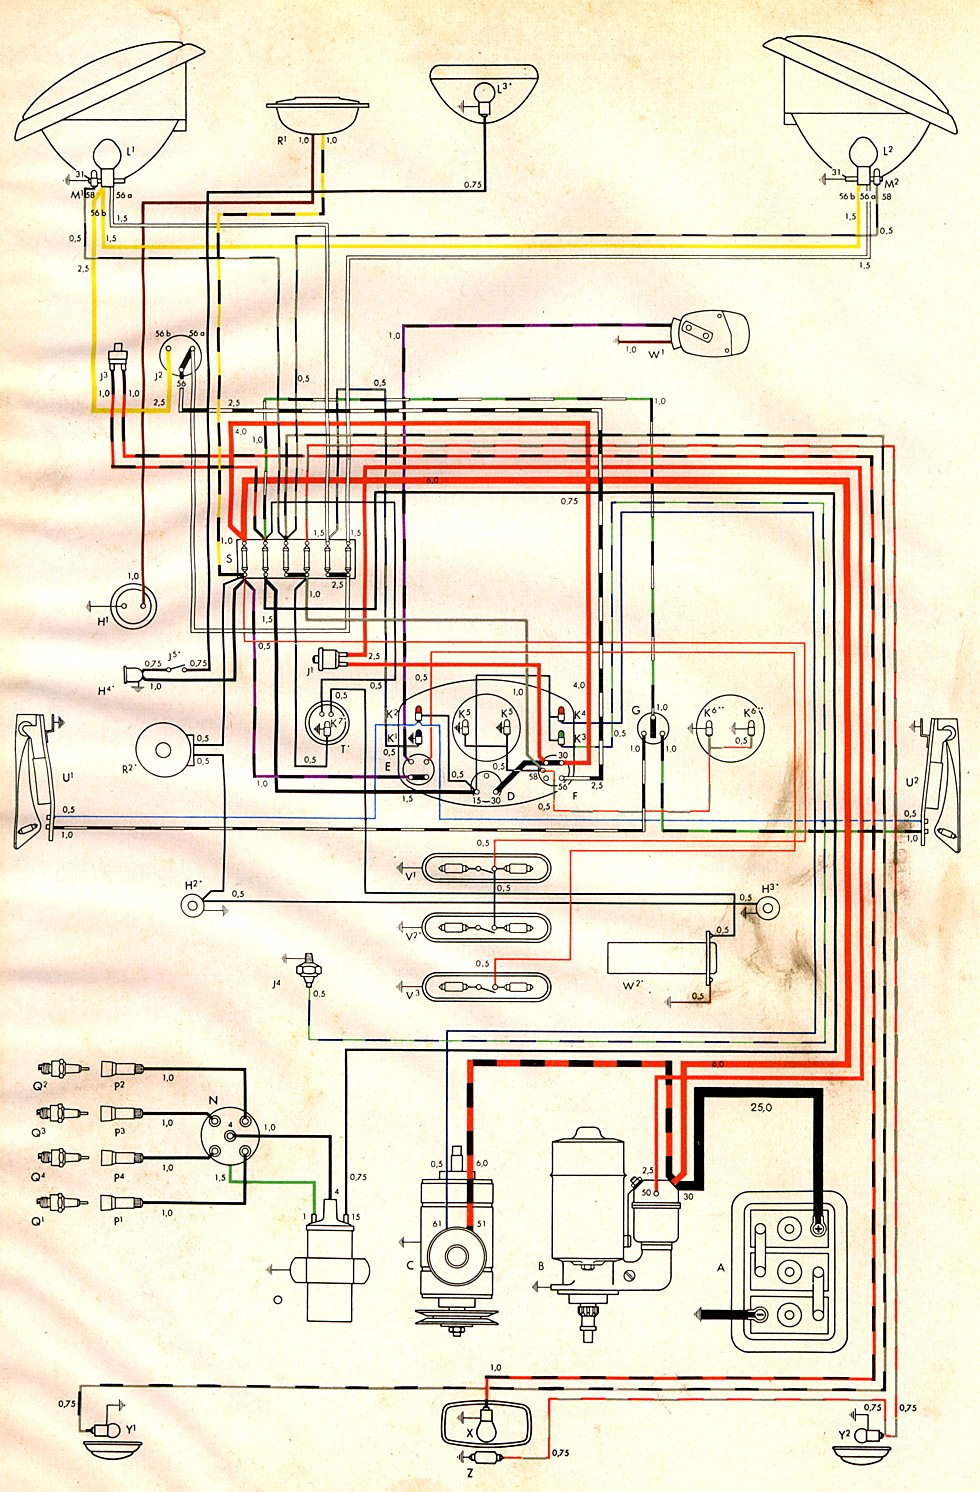 bus_jan54 1954 bus wiring diagram thegoldenbug com Volkswagen Type 2 Wiring Harness at crackthecode.co